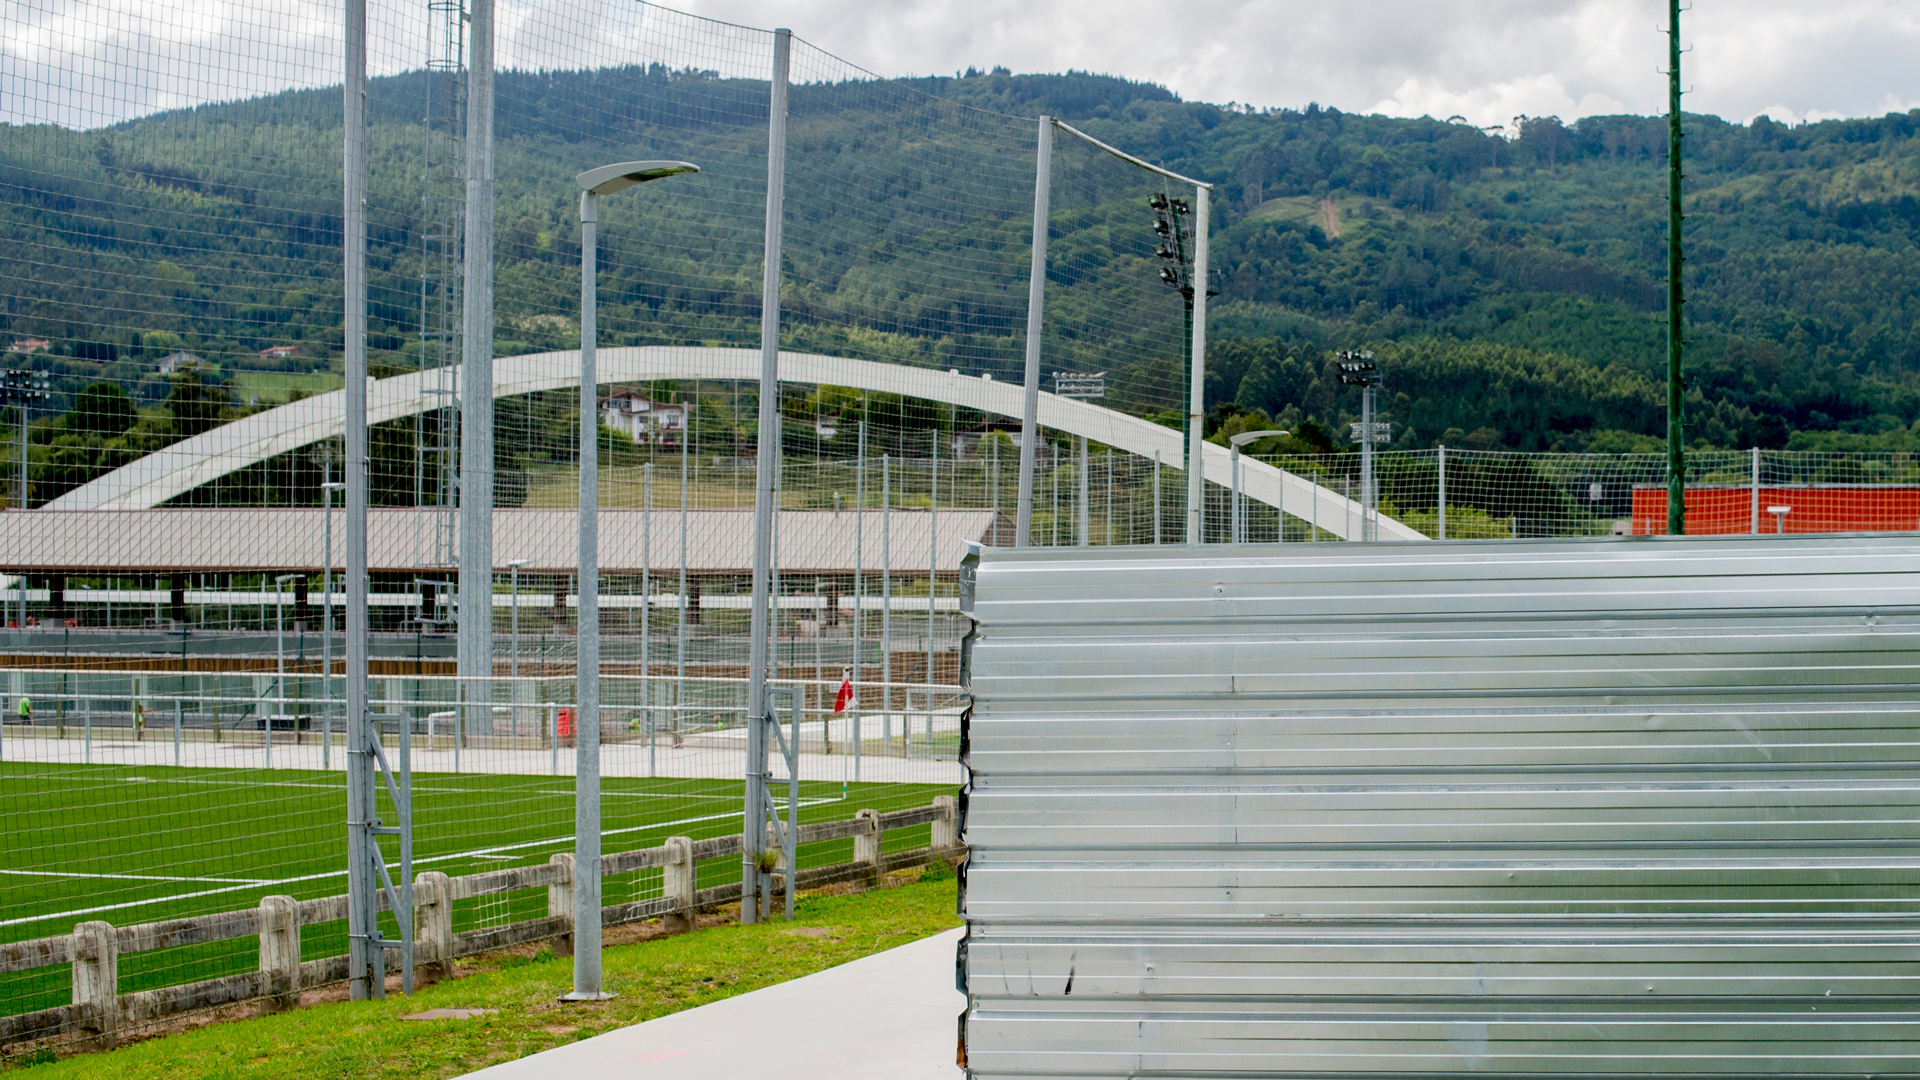 Tender: rigging the building for the first team in Lezama